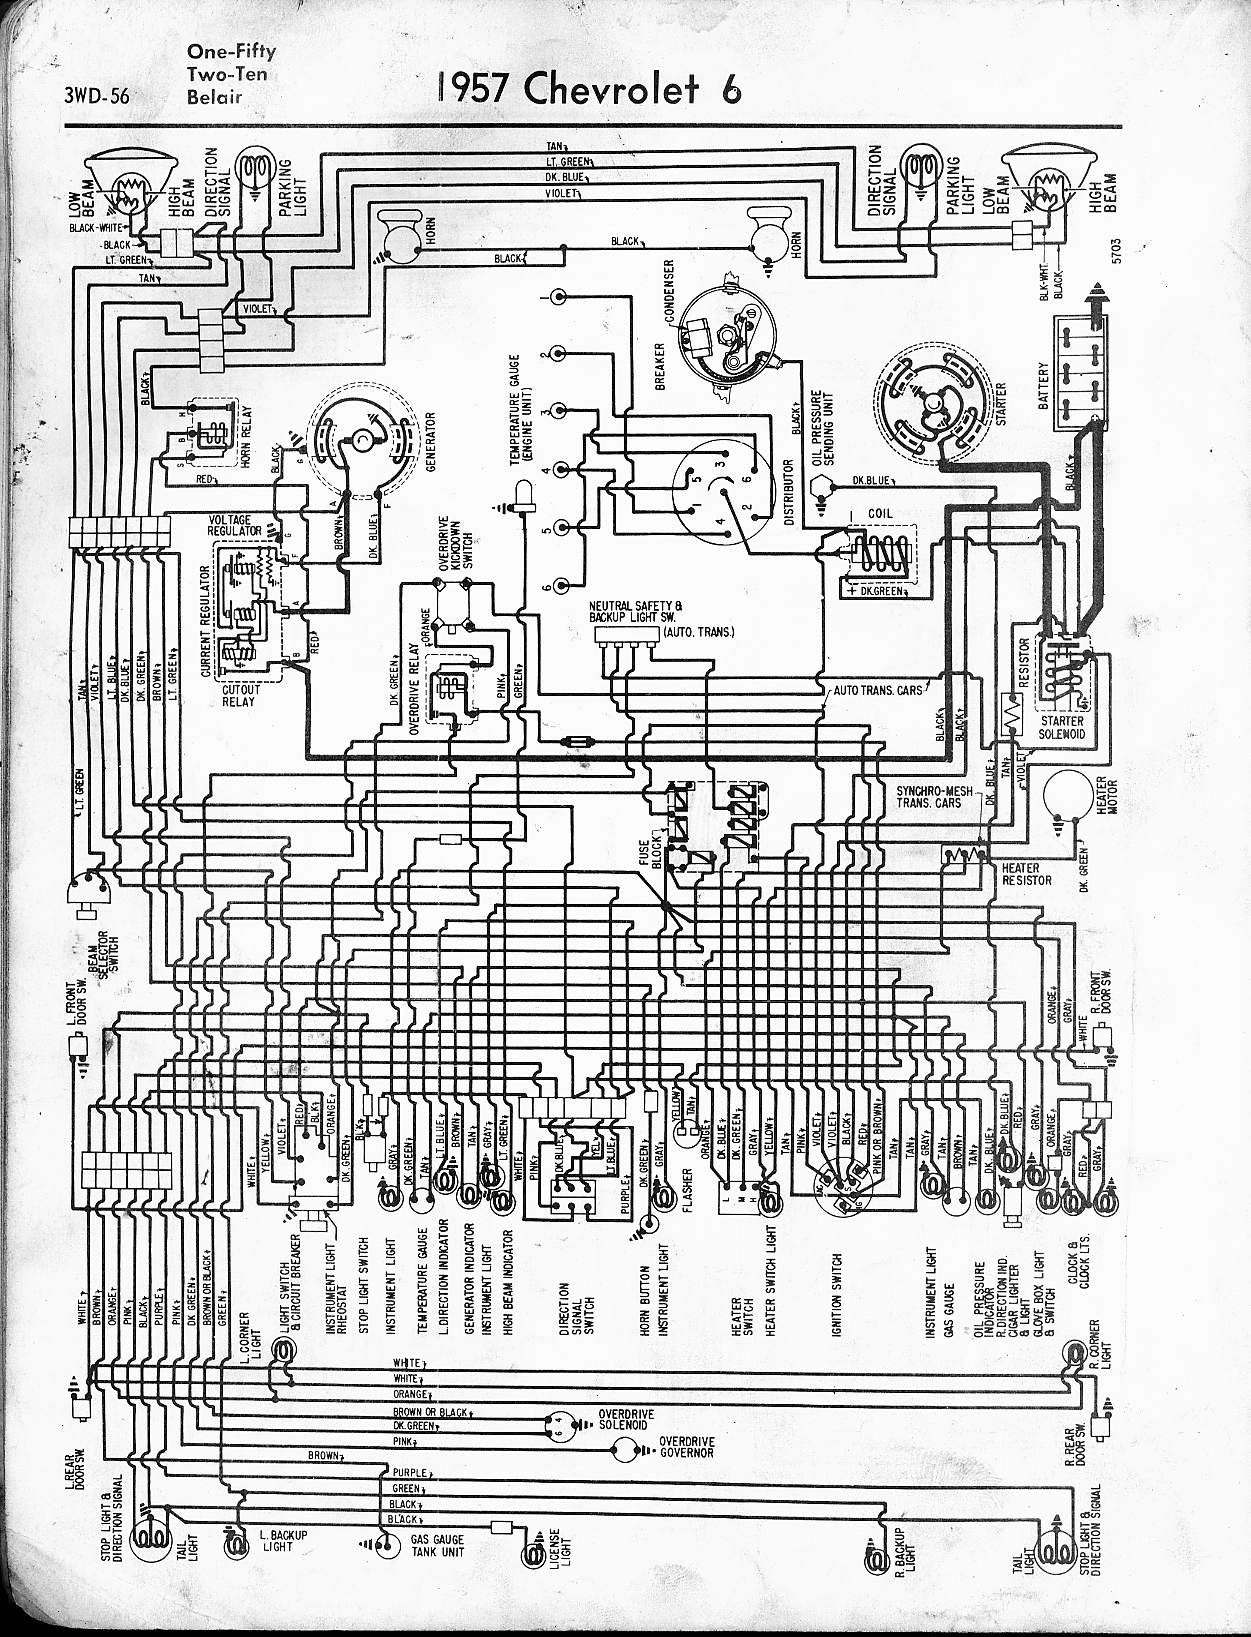 hight resolution of 57 65 chevy wiring diagrams1957 6 cyl one fifty two ten belair